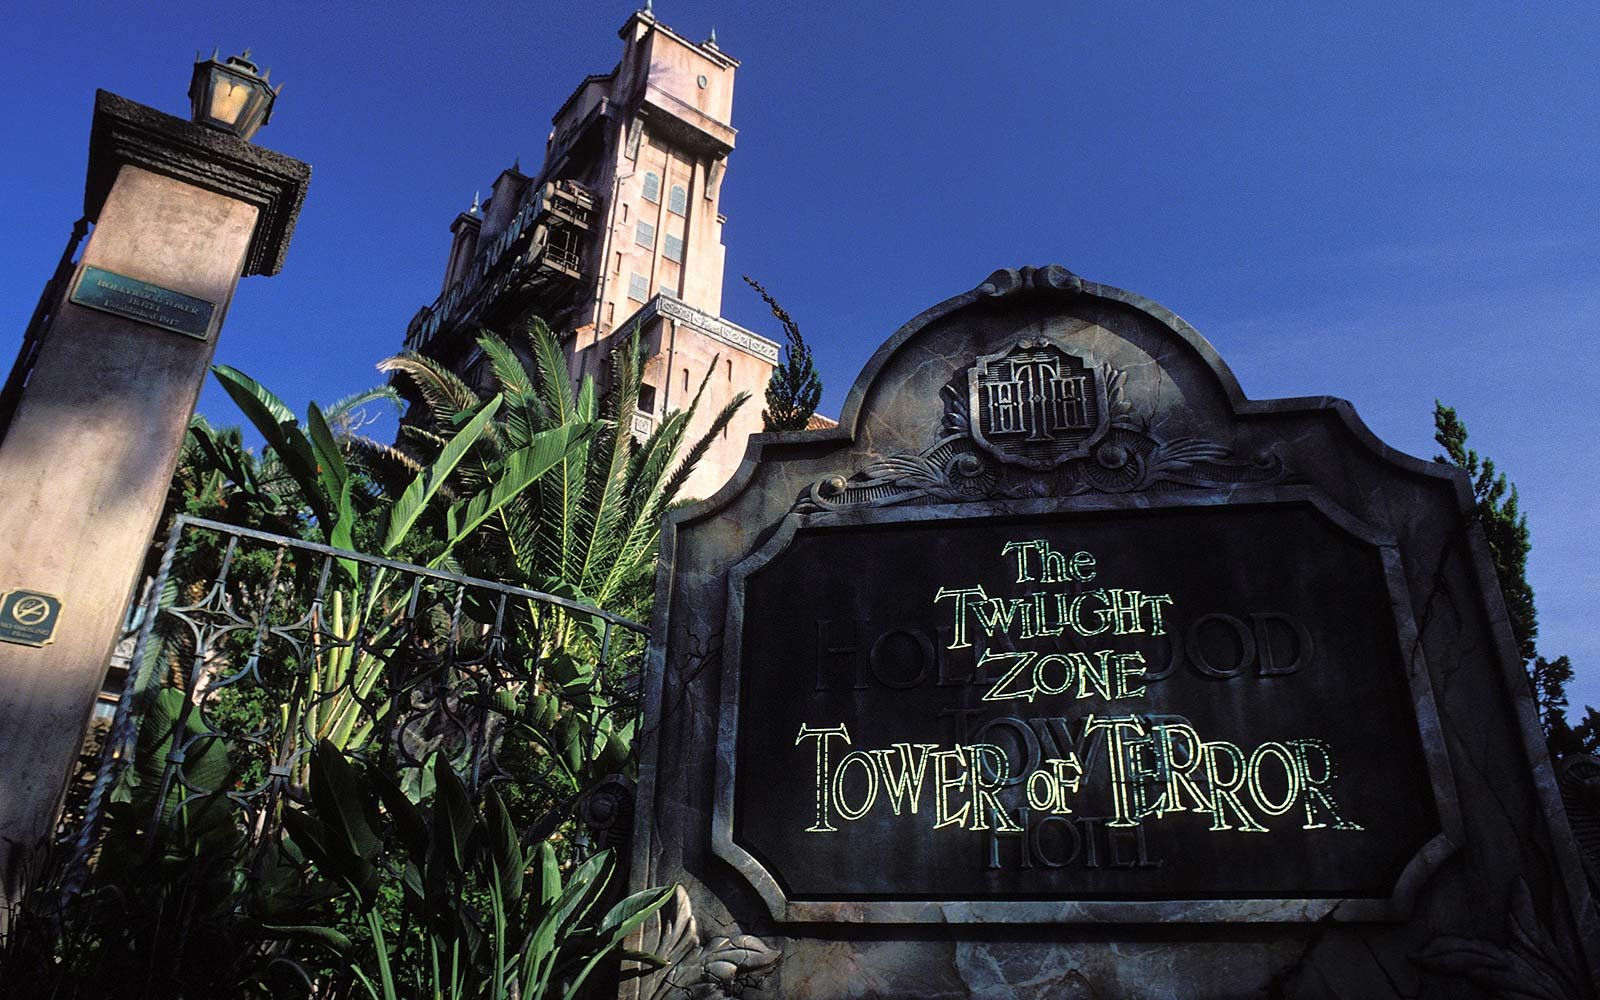 3. The Twilight Zone Tower of Terror